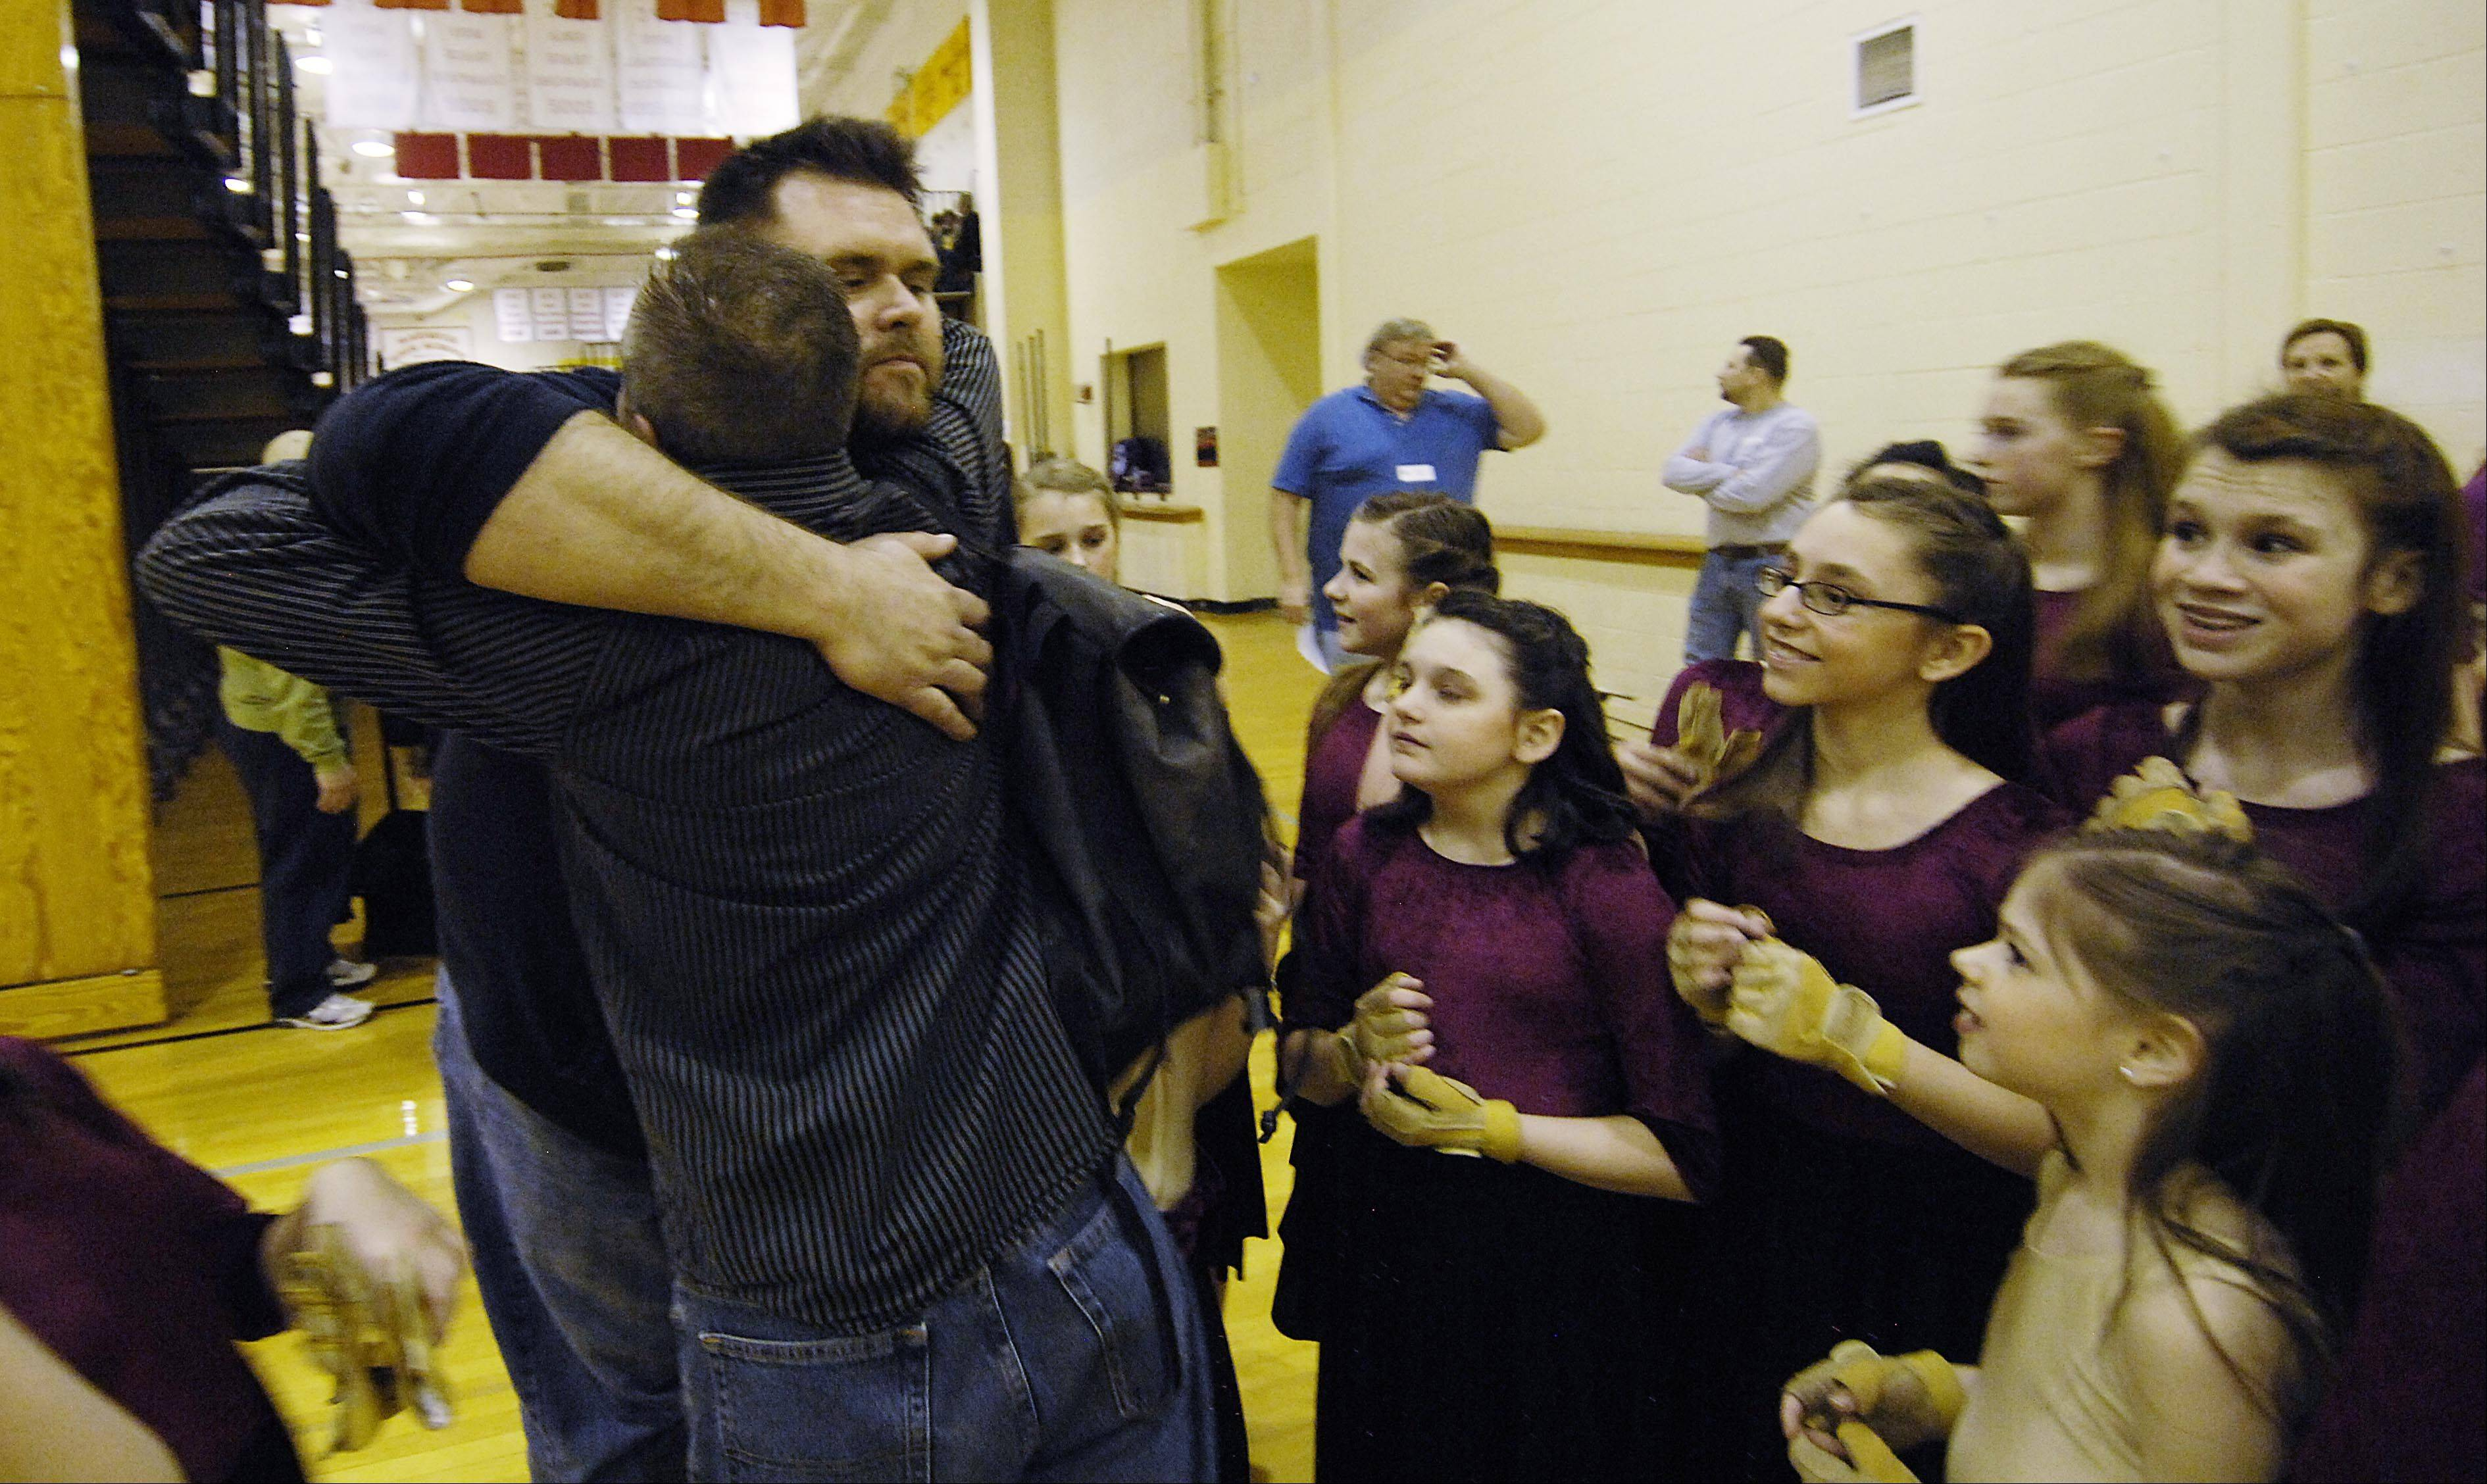 Assistant Director Don Wiles hugs Eric Hall, director of Allegiance Youth Color Guard of Dundee, after a performance as the cadet squad watches. The performing arts group incorporates dance, theater, props, and traditional color guard marching into a judged, 3-minute competition performance.